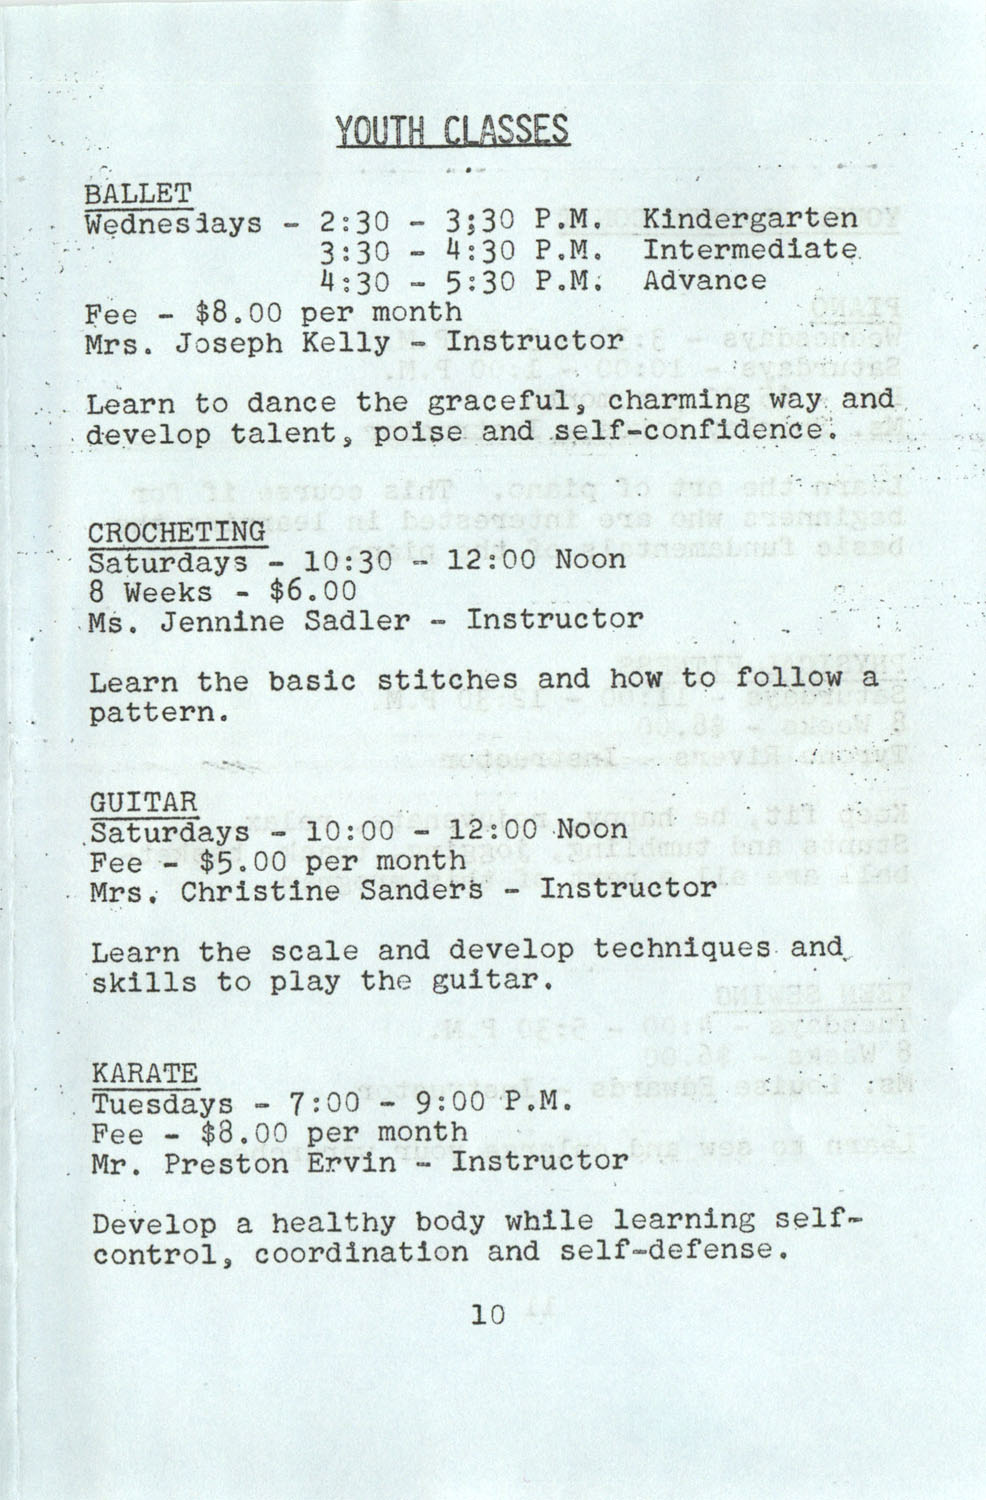 YWCA Spring 1975 Schedule, Page 10